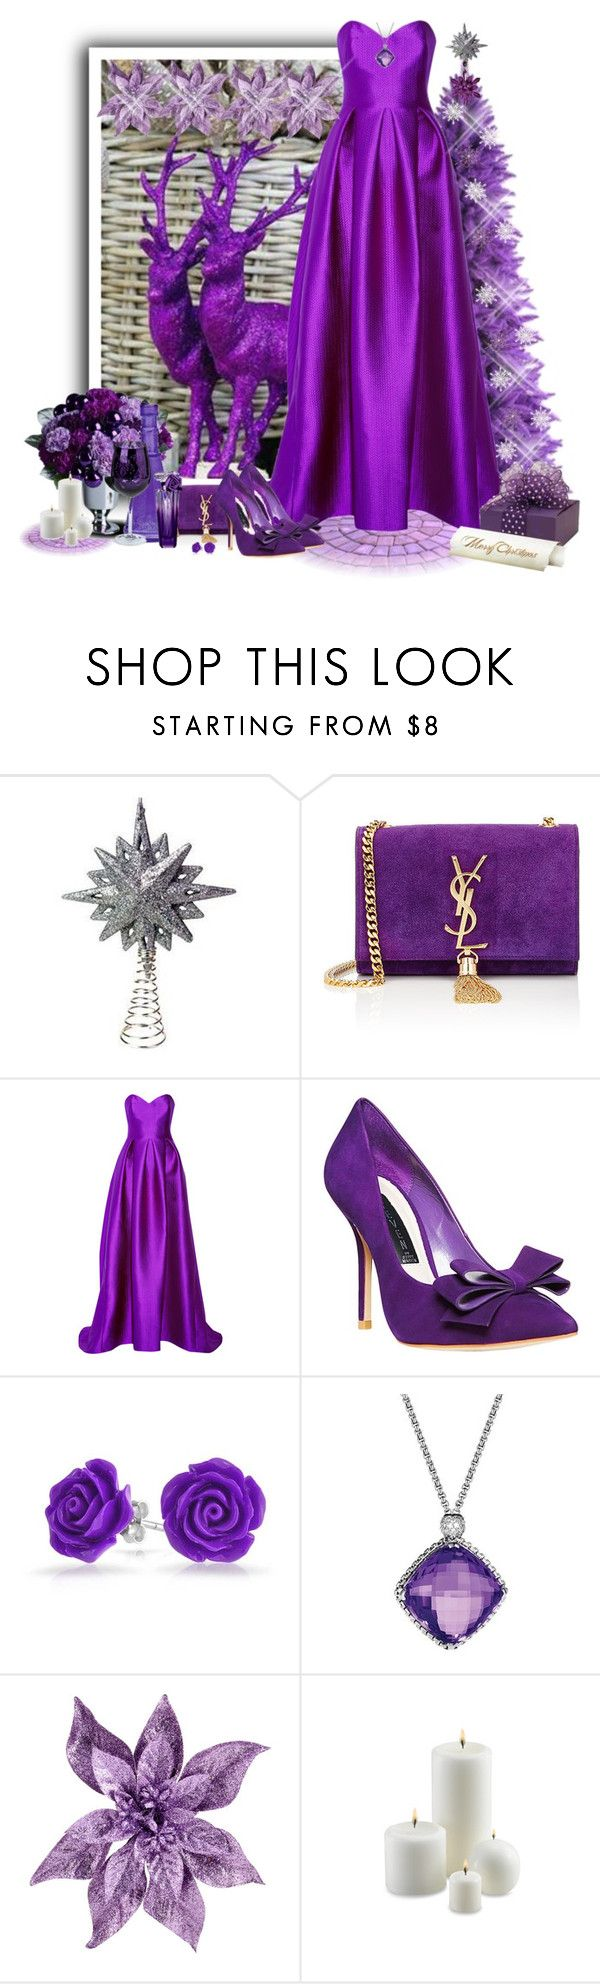 """natal em roxo"" by sil-engler ❤ liked on Polyvore featuring Yves Saint Laurent, Lela Rose, Steven by Steve Madden, Bling Jewelry, David Yurman and Bico"